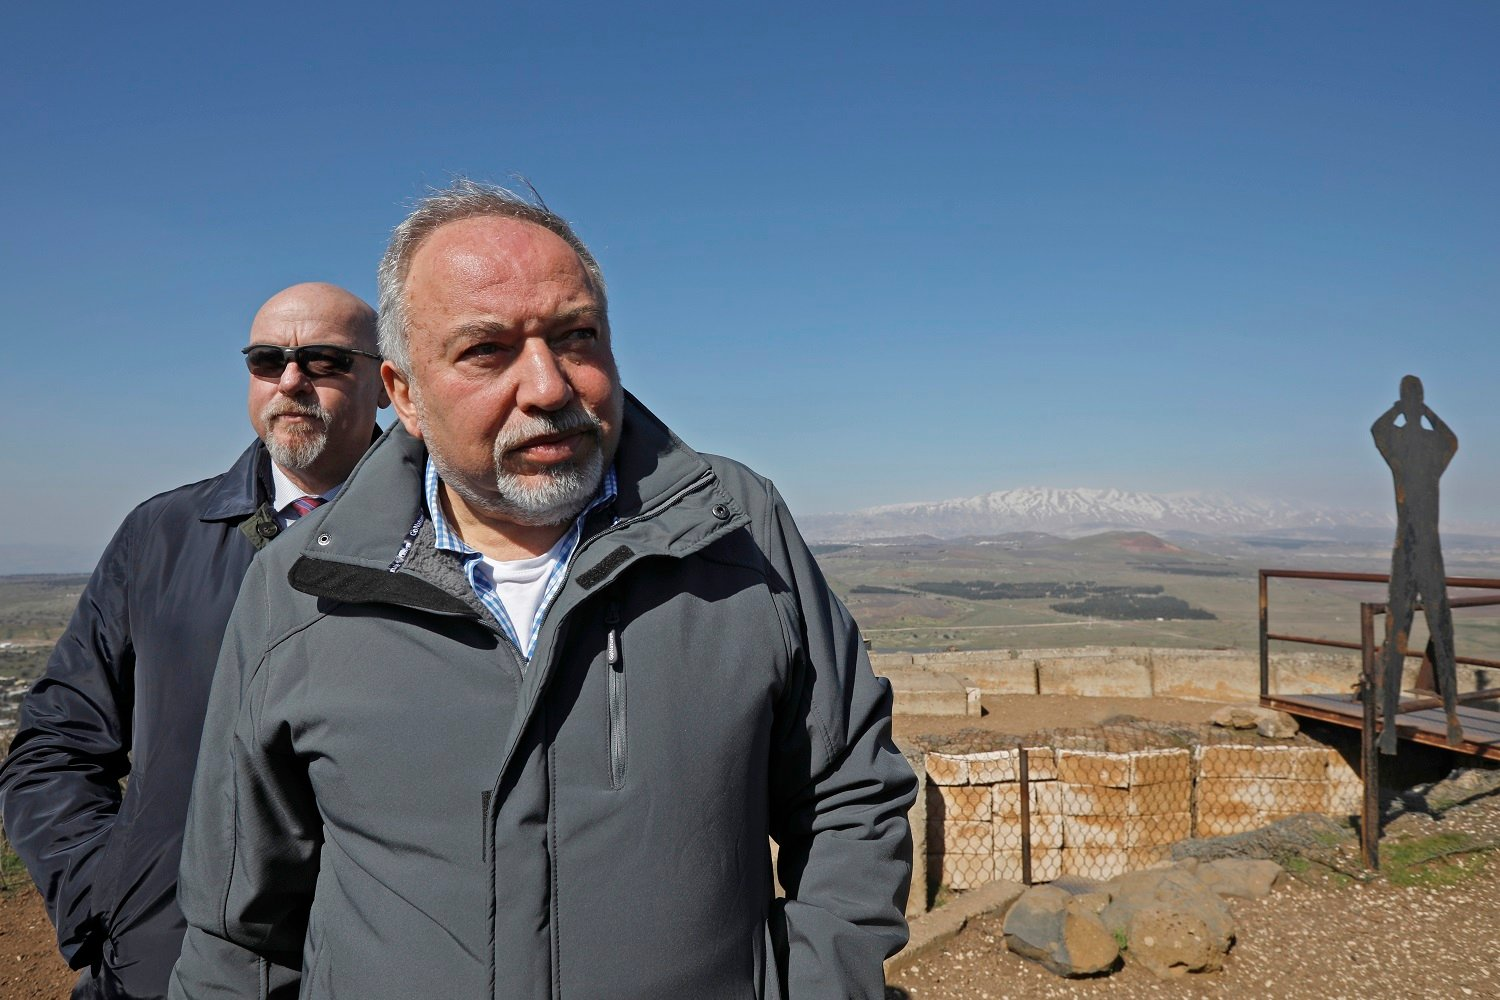 Avigdor Lieberman visits a lookout on  Mount Bental in the Golan Heights in February 2019 (AFP)